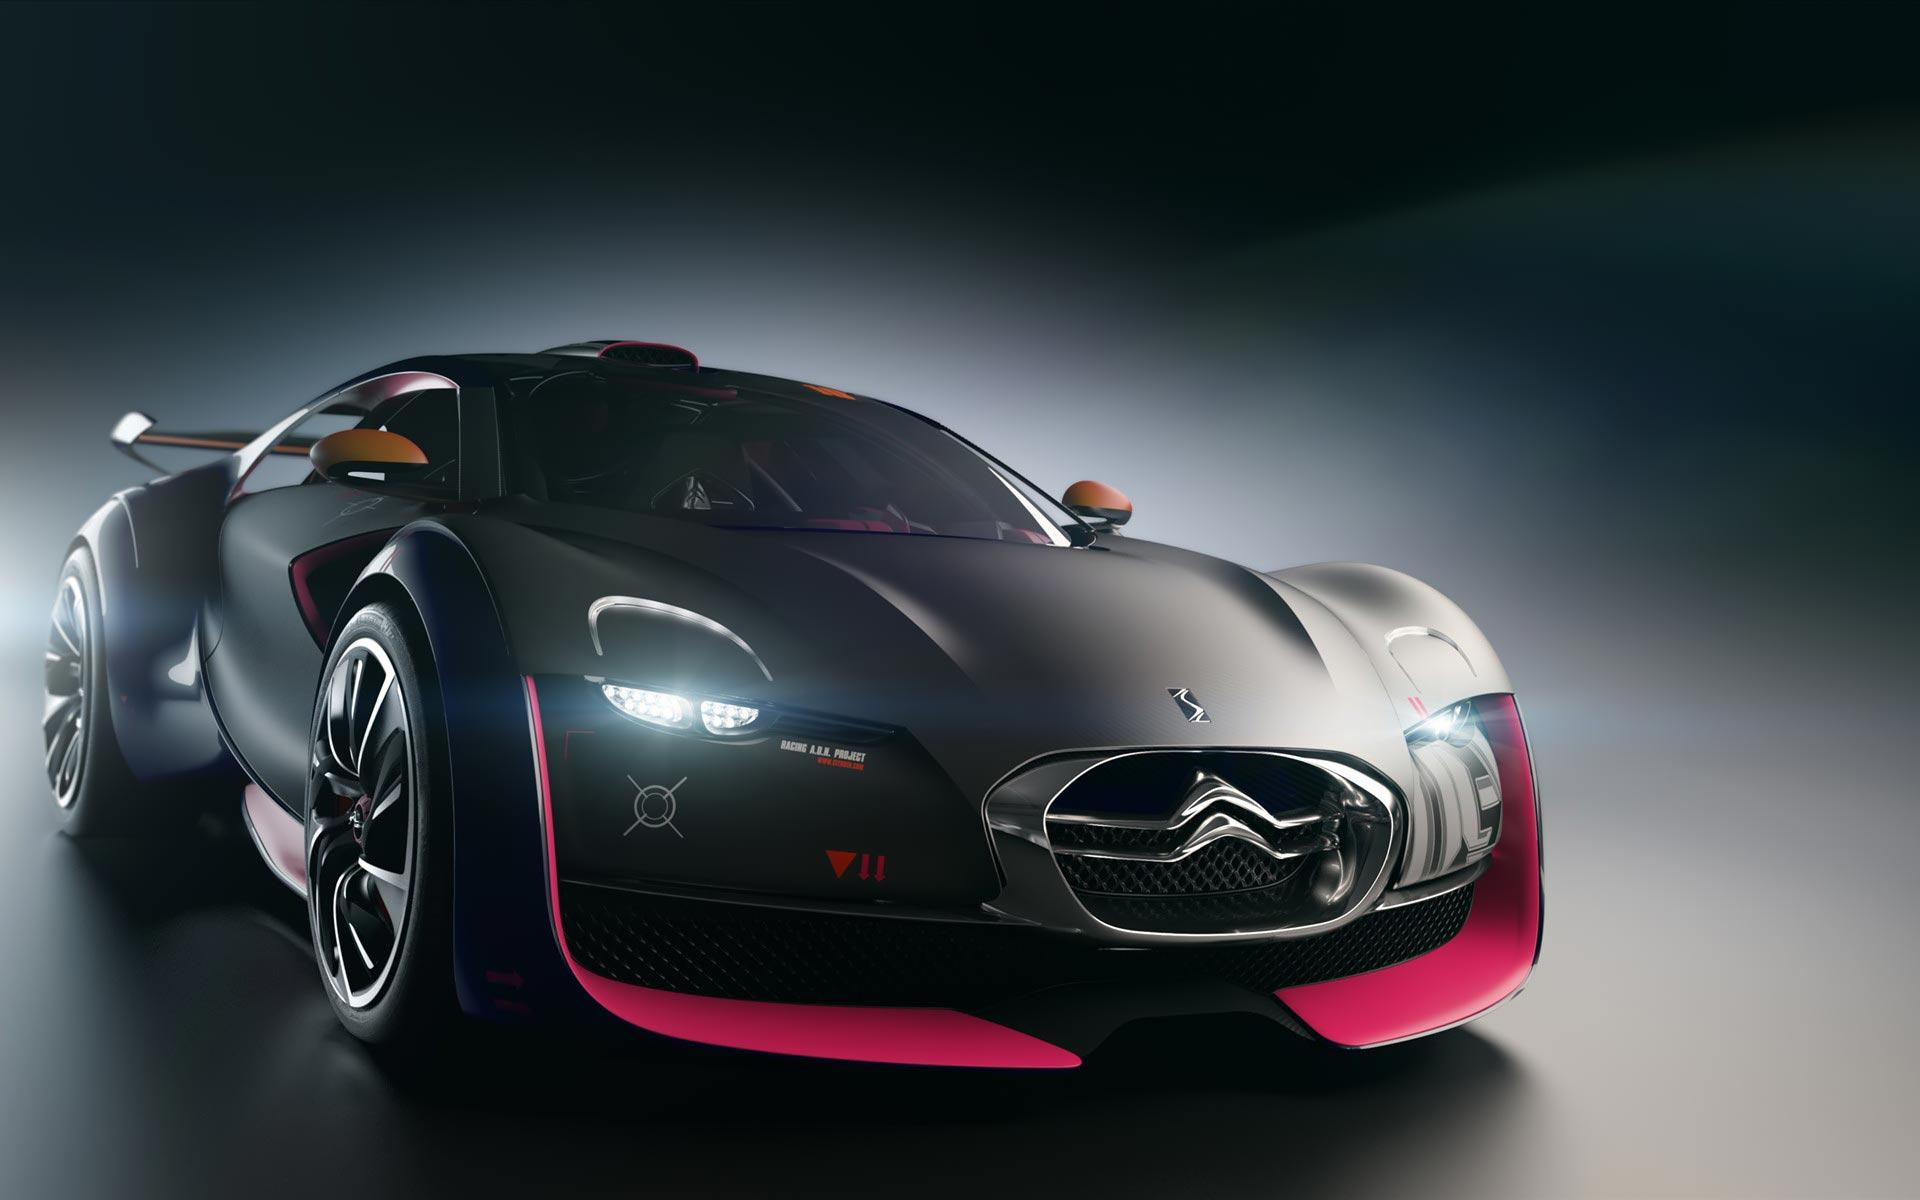 Sports Car Wallpapers - Top Free Sports